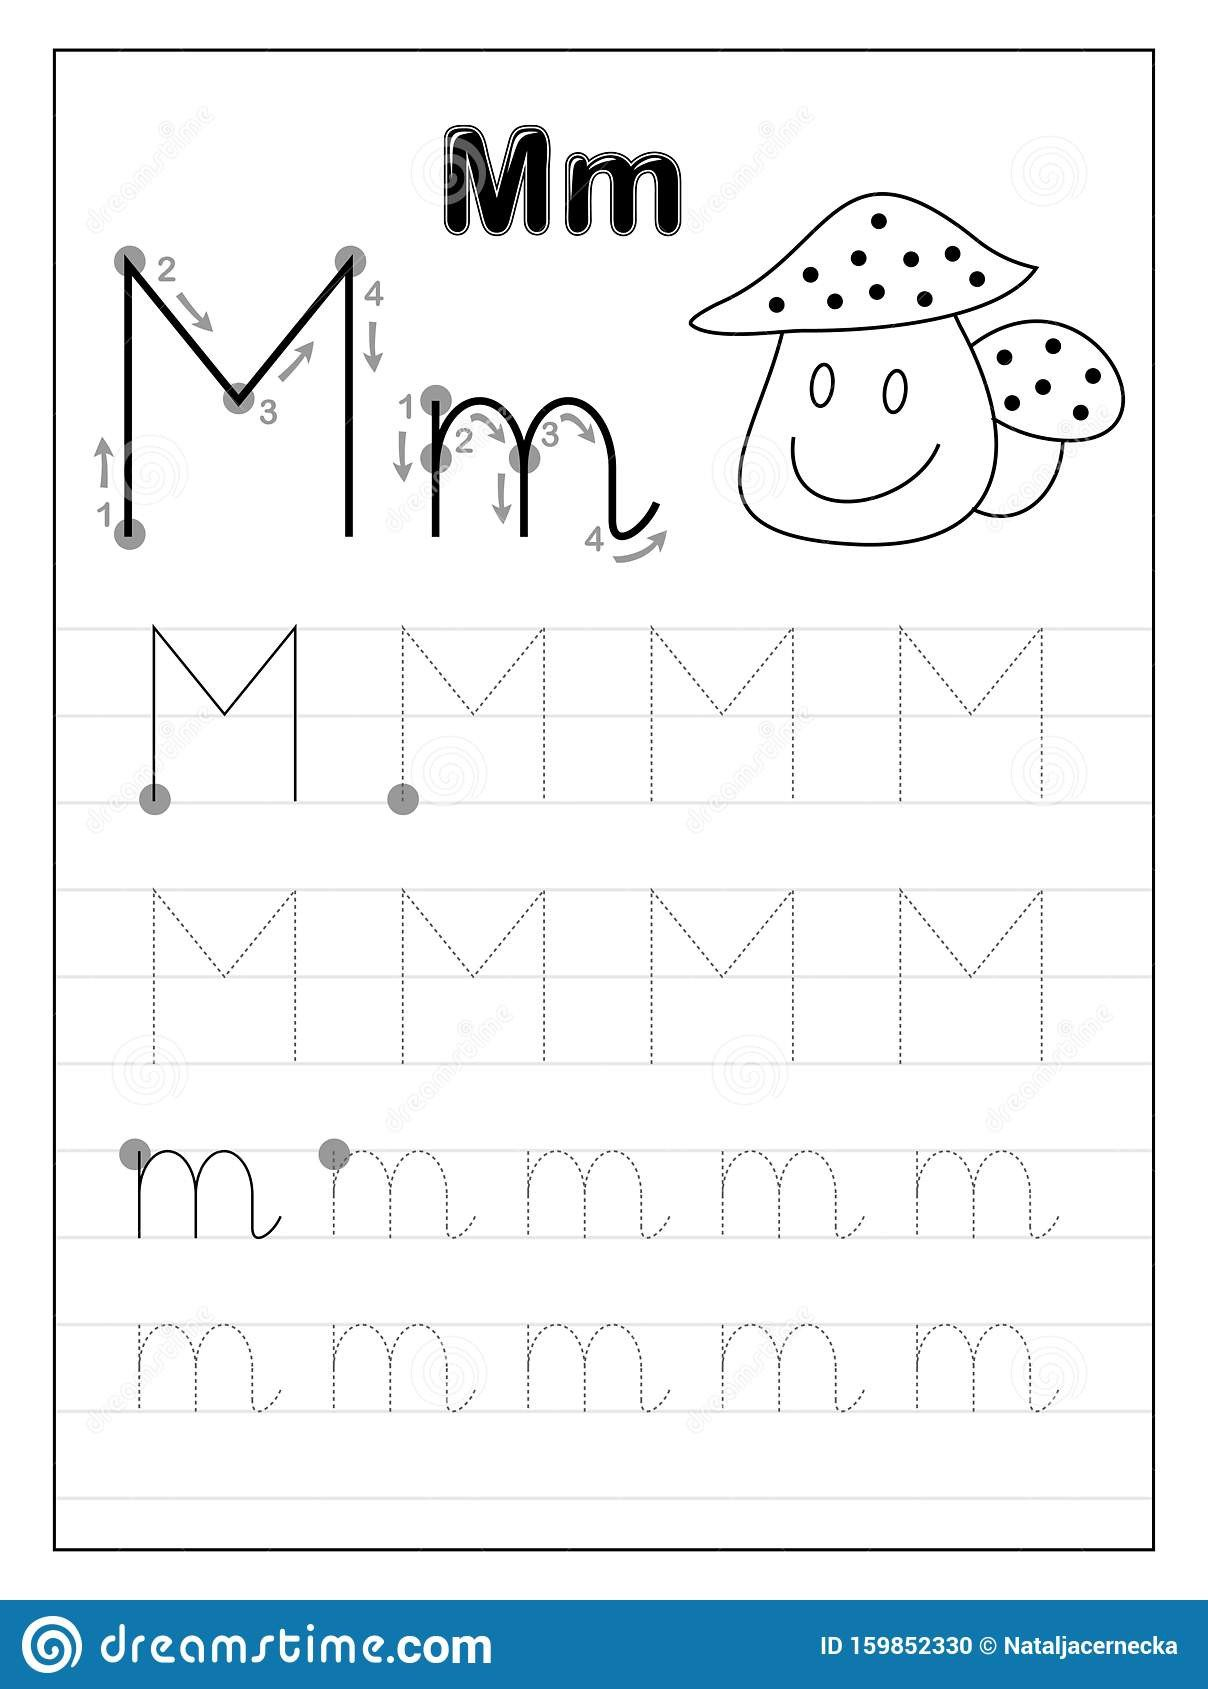 tracing alphabet letter m black white educational pages line kids printable worksheet children textbook developing